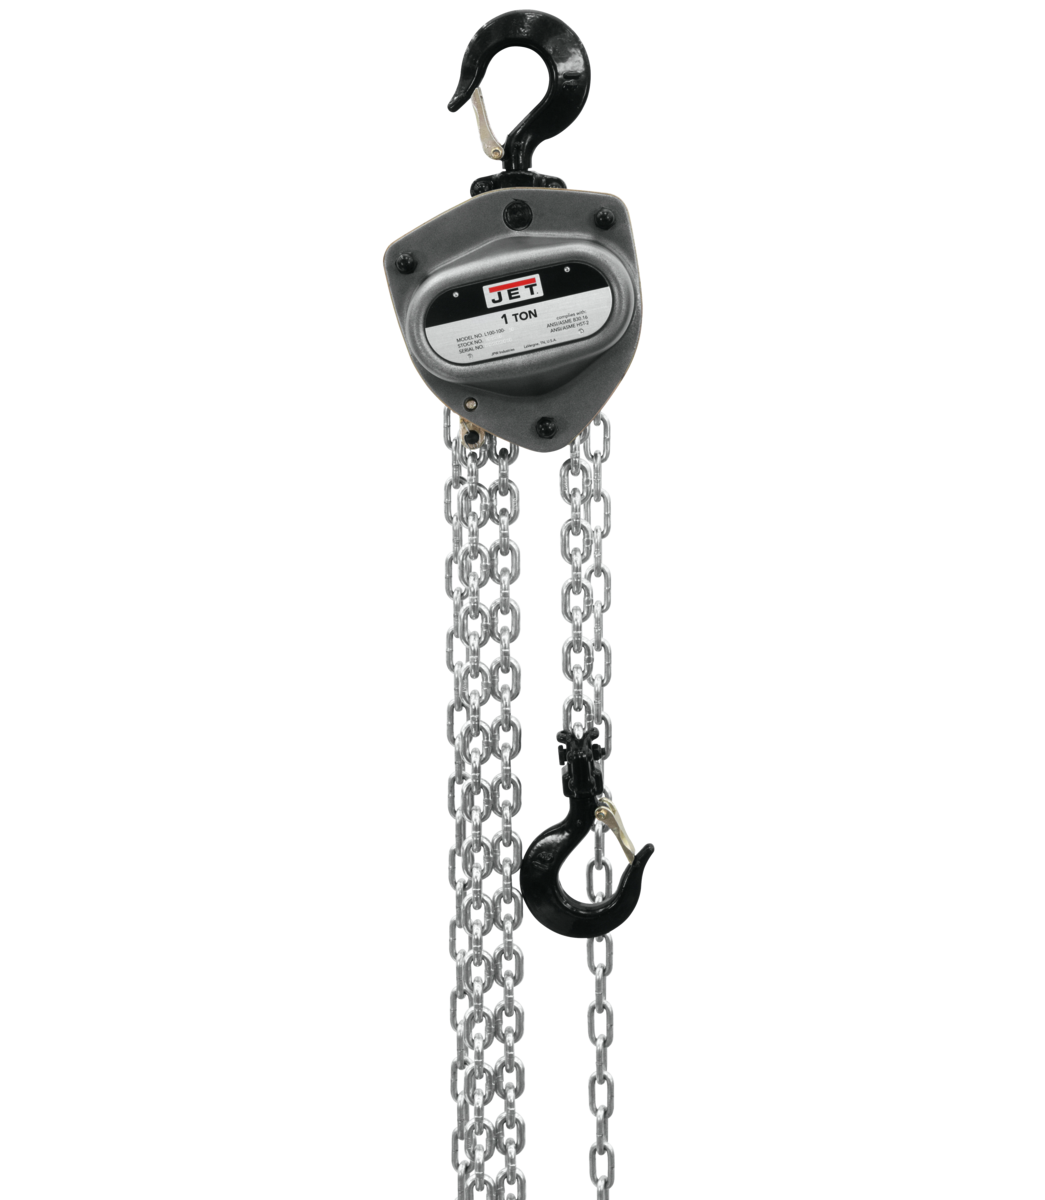 L-100-100WO-15, 1-Ton Hand Chain Hoist With 15' Lift & Overload Protection